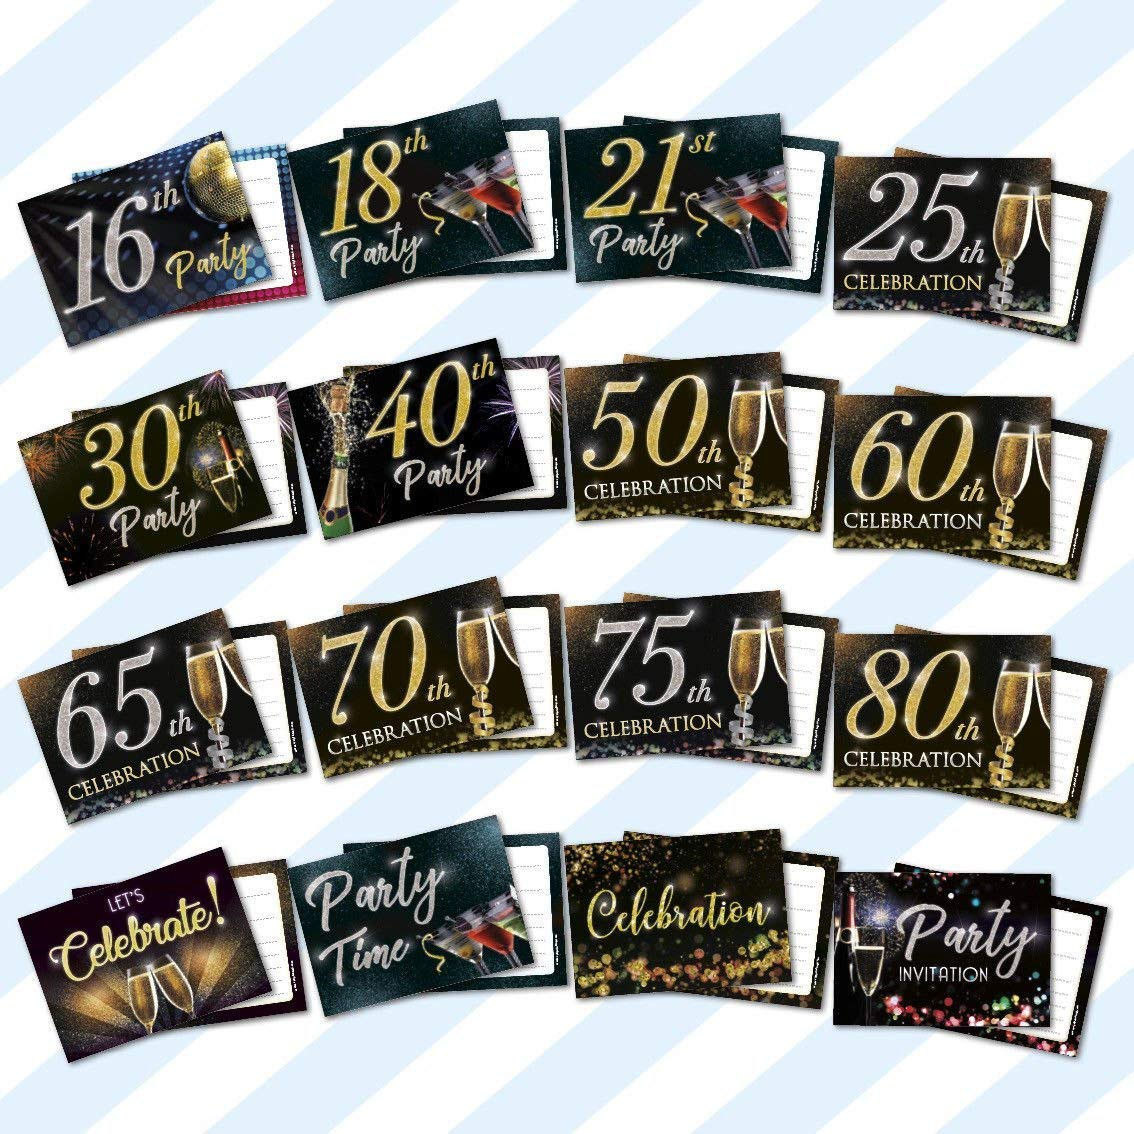 1 Sample Card + 1 Envelope Birthday Party Invitations Invites Anniversary Celebration with Envelopes 70th Celebration A6 CARDS